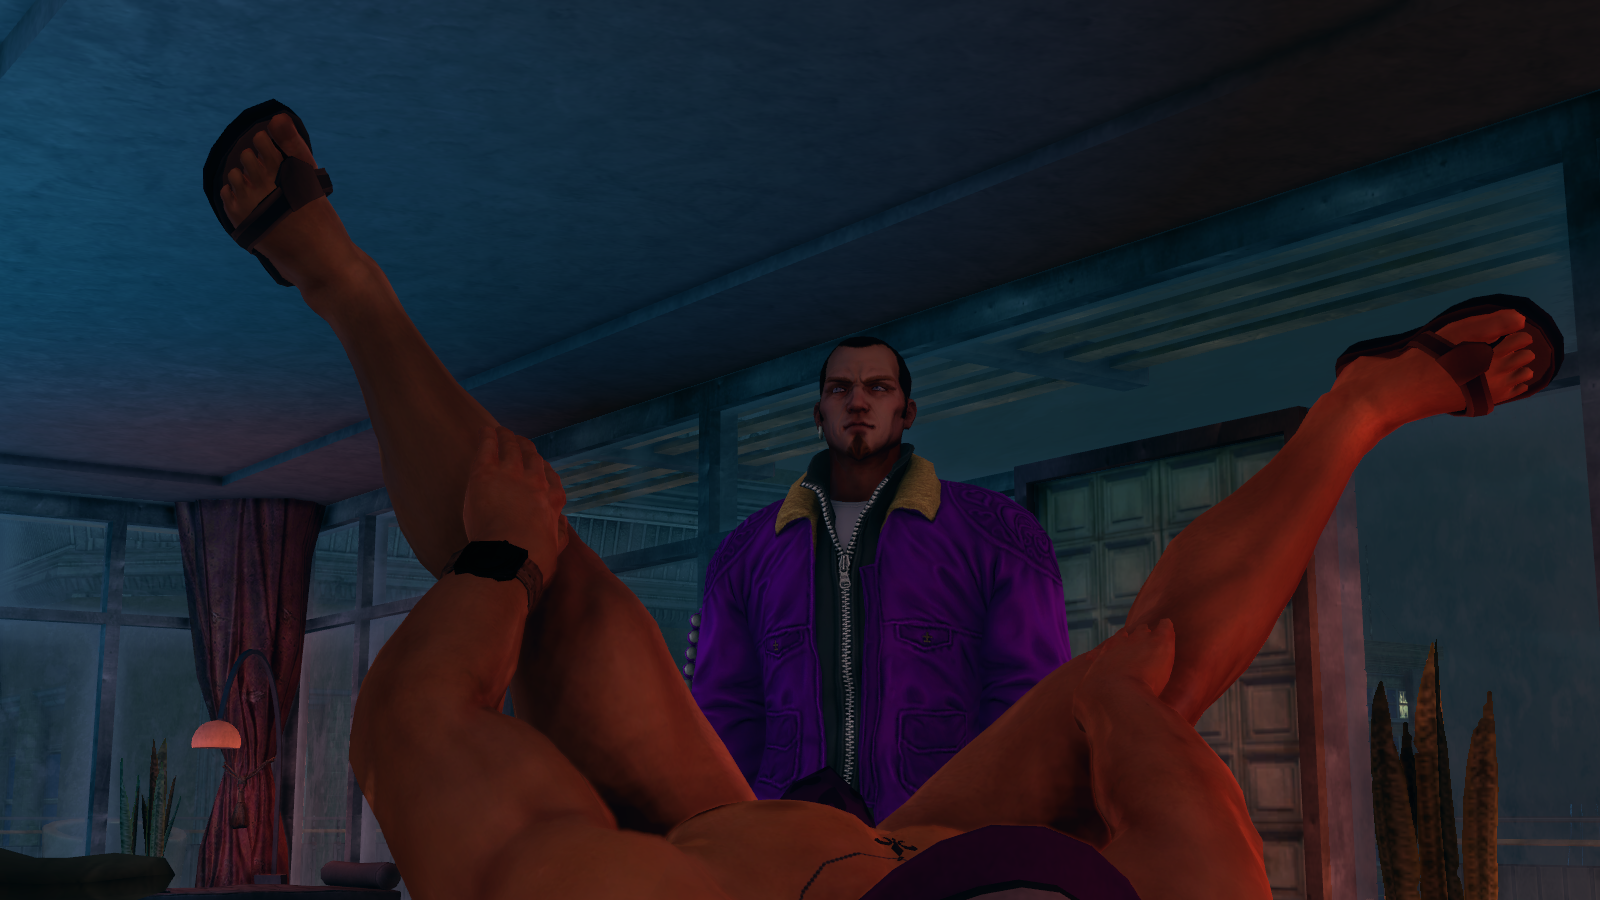 Saints row nude strippers sexy pornstar